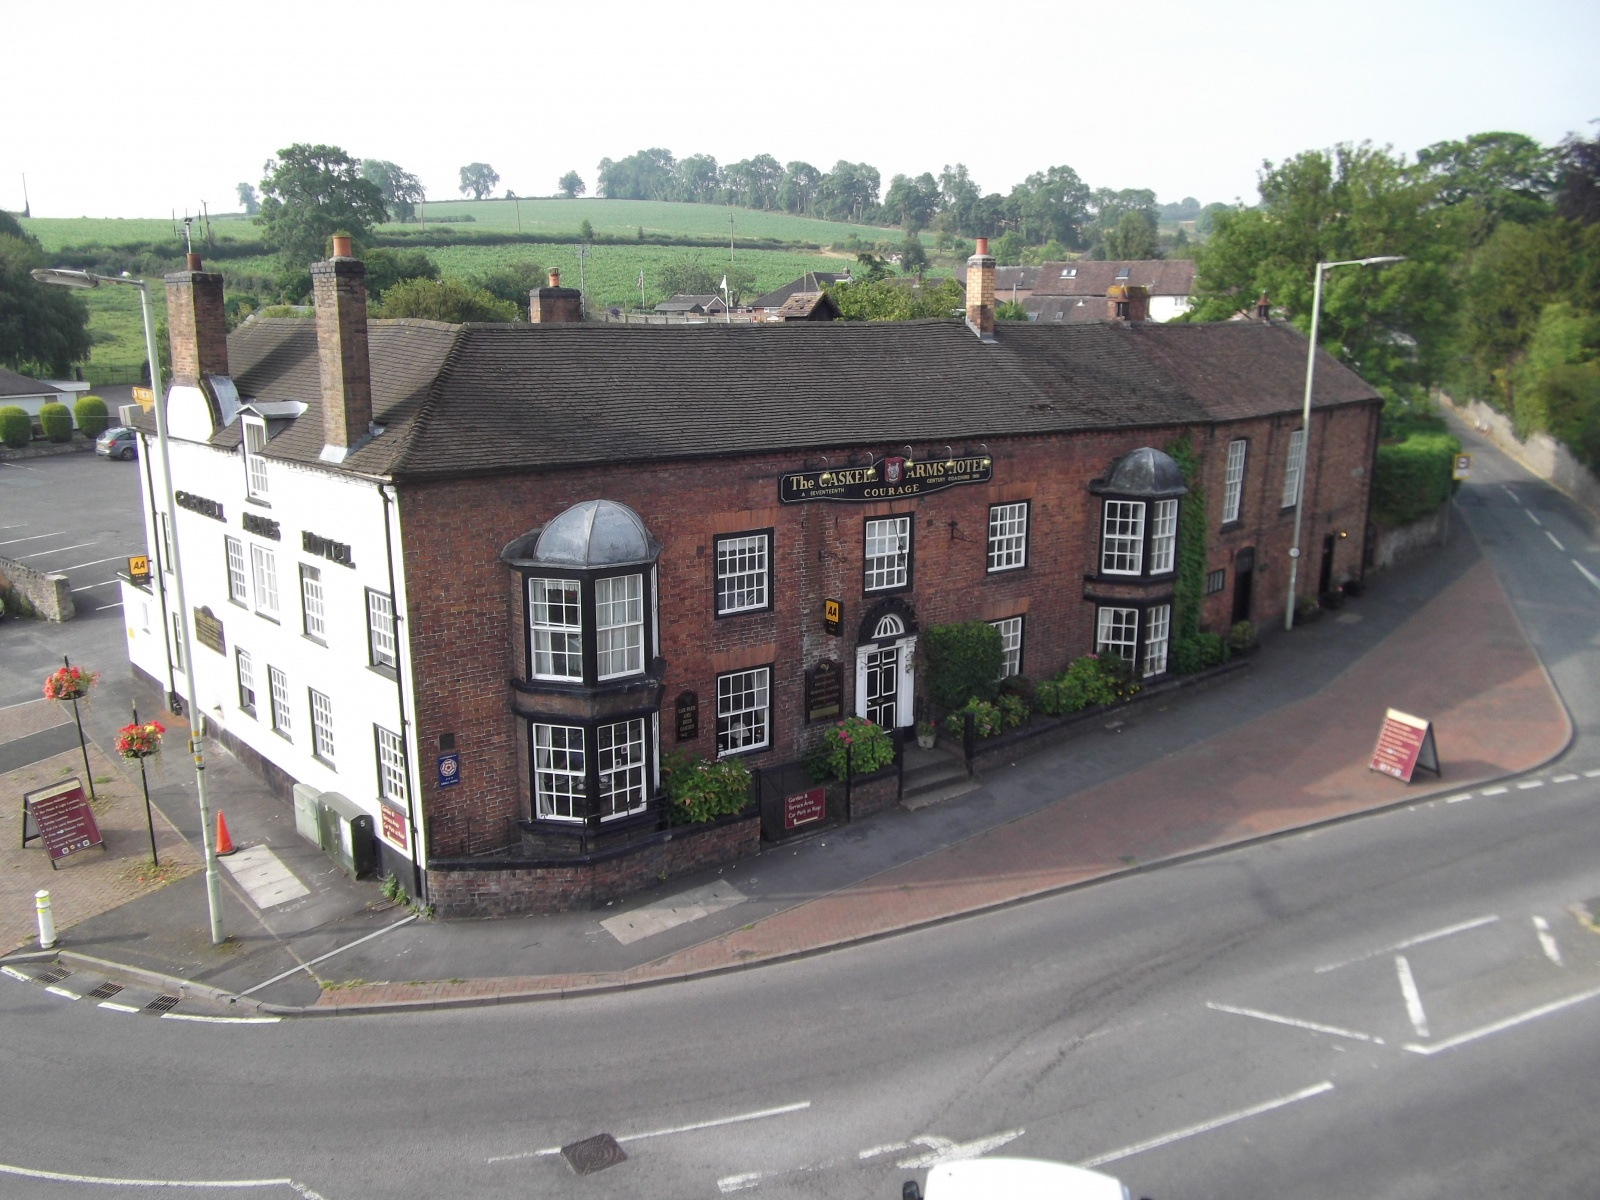 The Gaskell Arms Hotel , Bourton Road, Much Wenlock, Shropshire